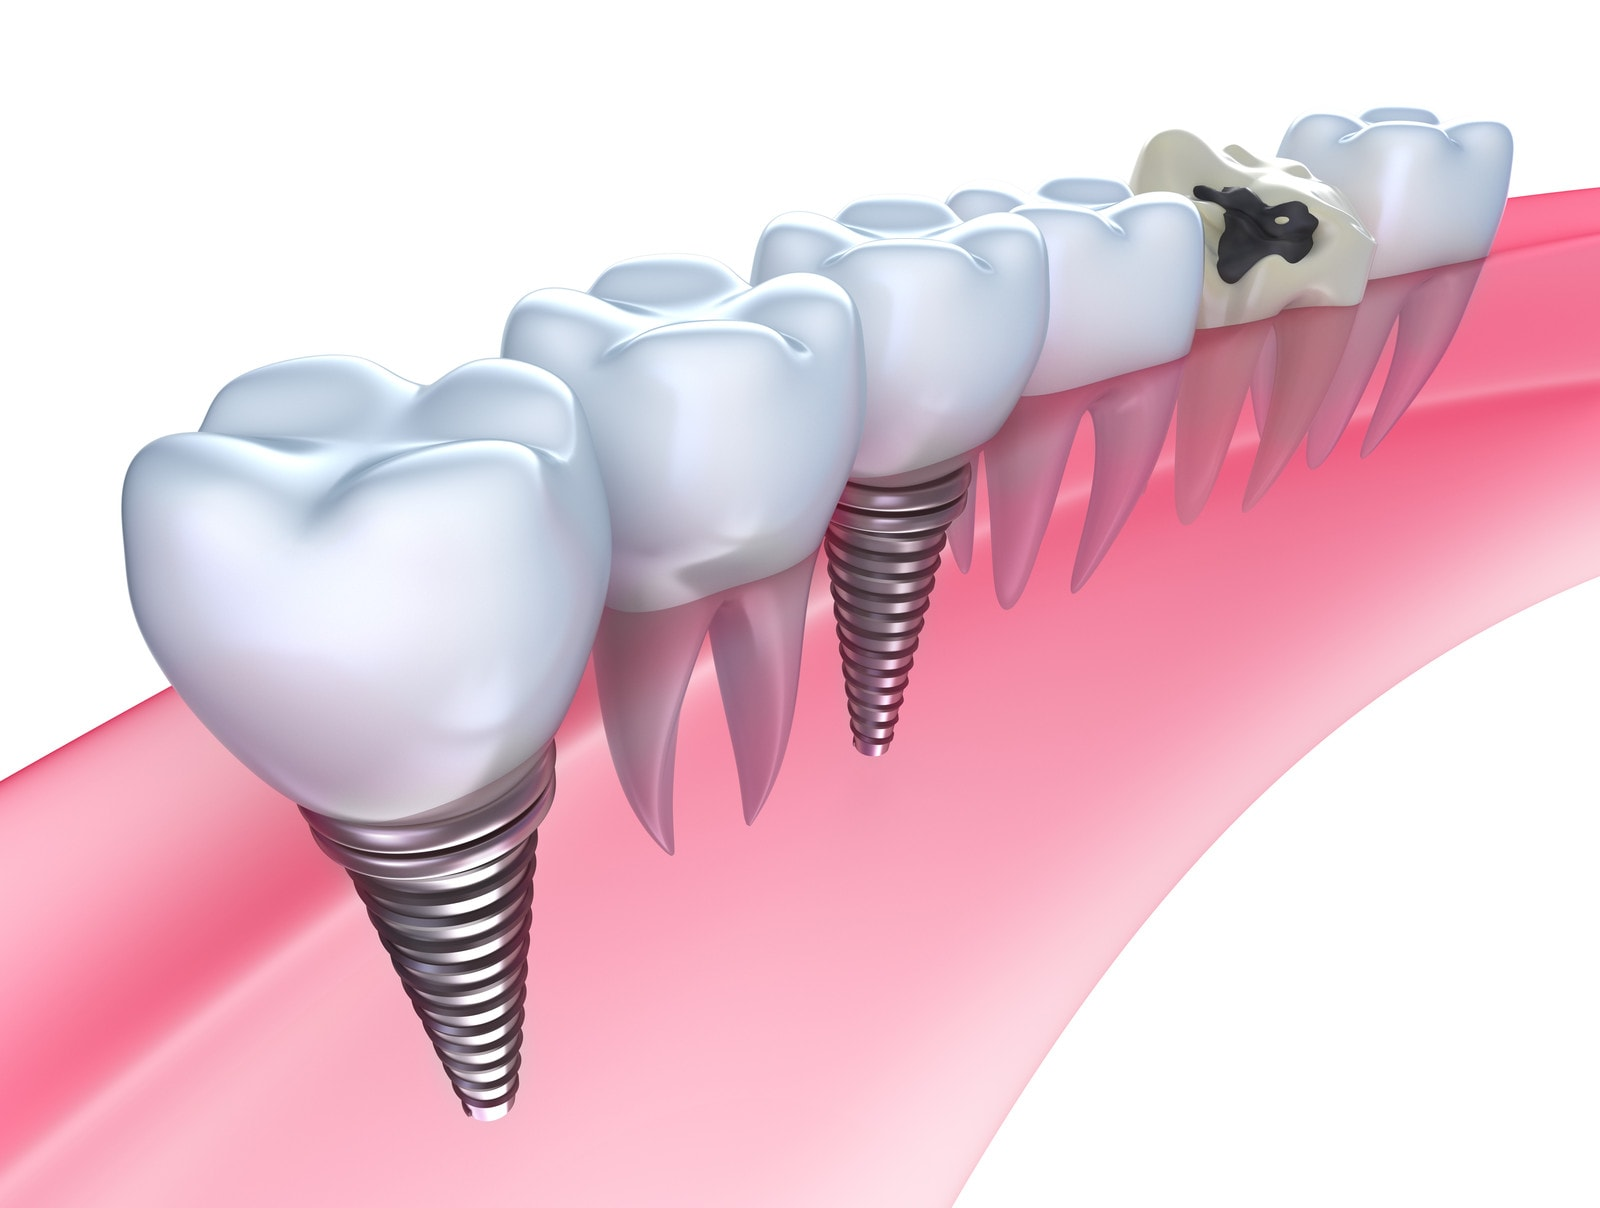 Dental Implants2